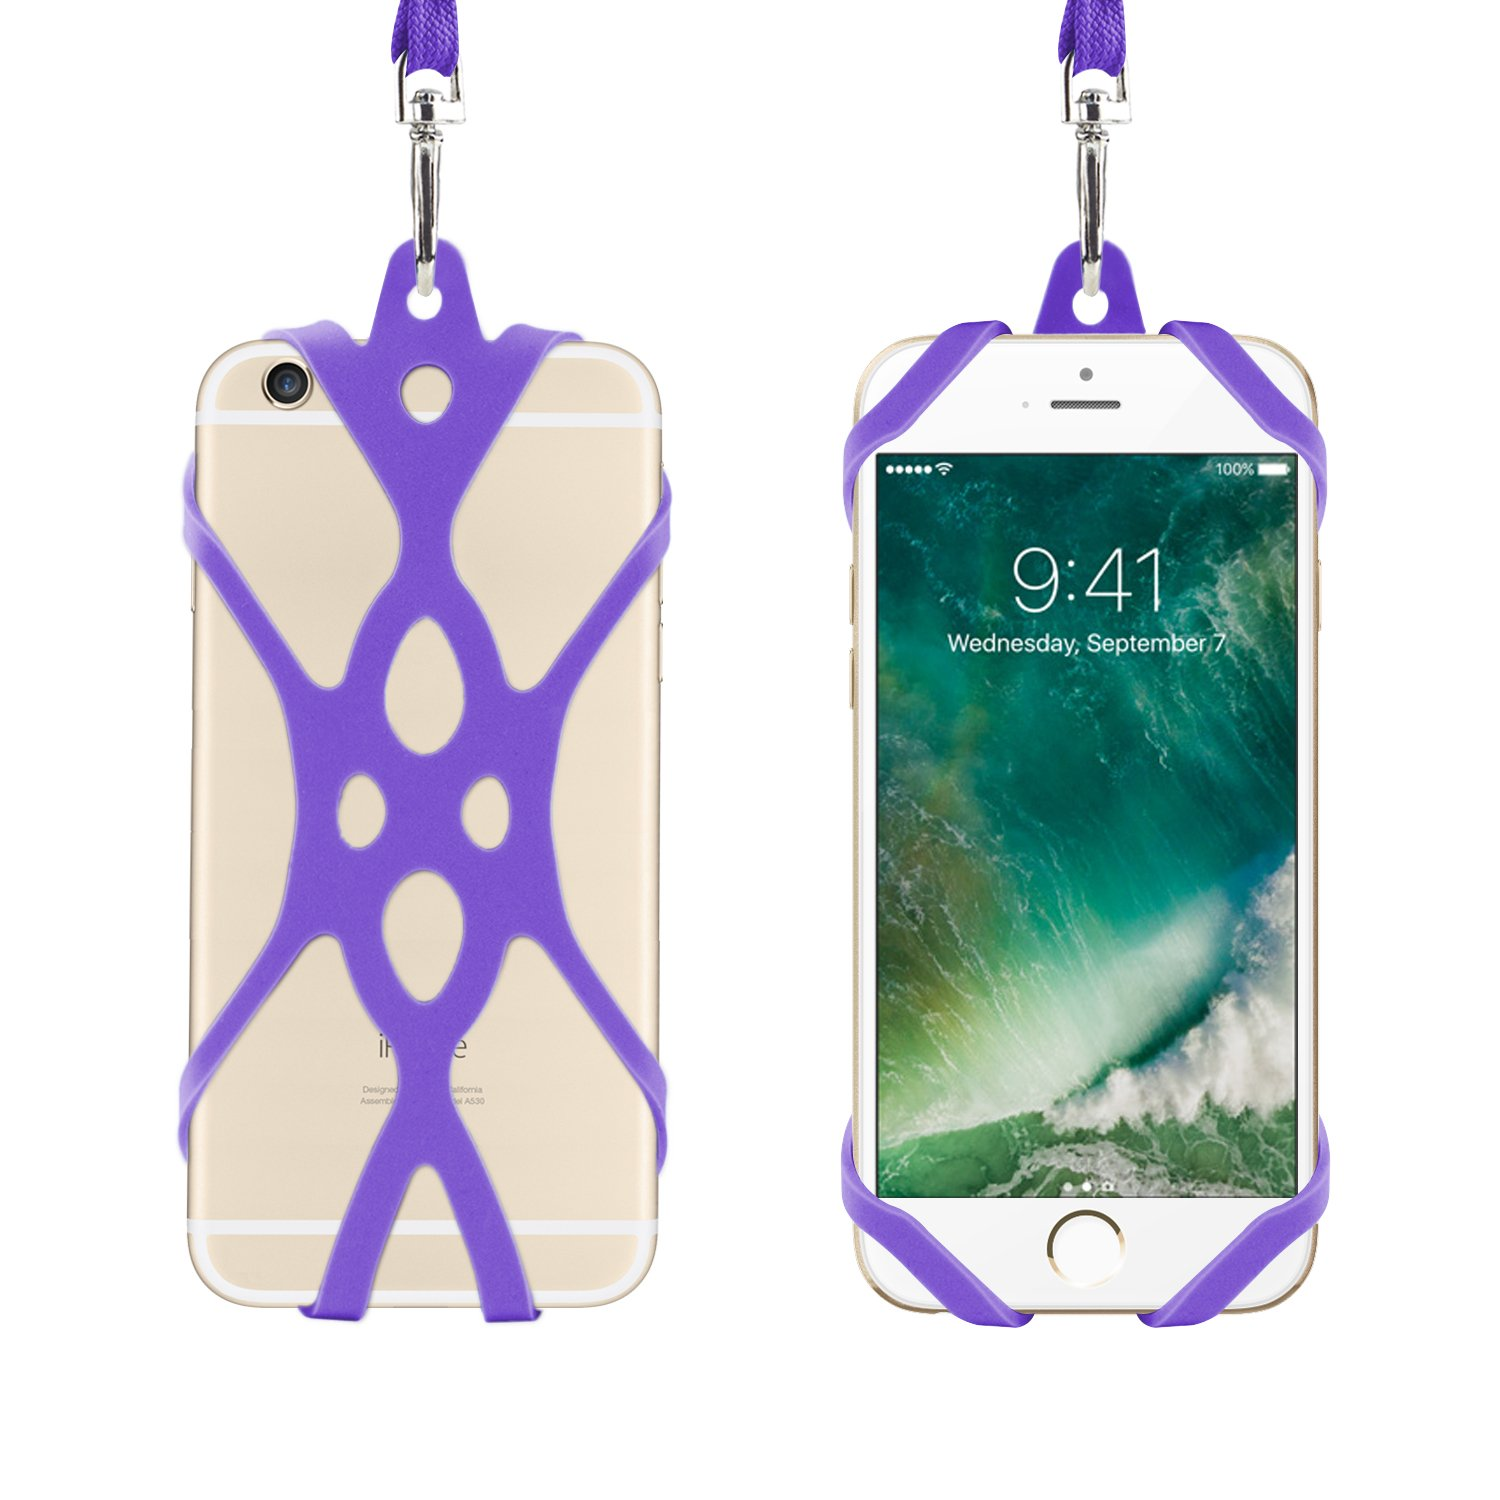 Amazon.com: Remeel Phone Lanyard Strap with Universal Silicone Case Holder for iPhone 7 iPhone 7plus iPhone 6 iPhone 6s and Even All Size Smartphone ...